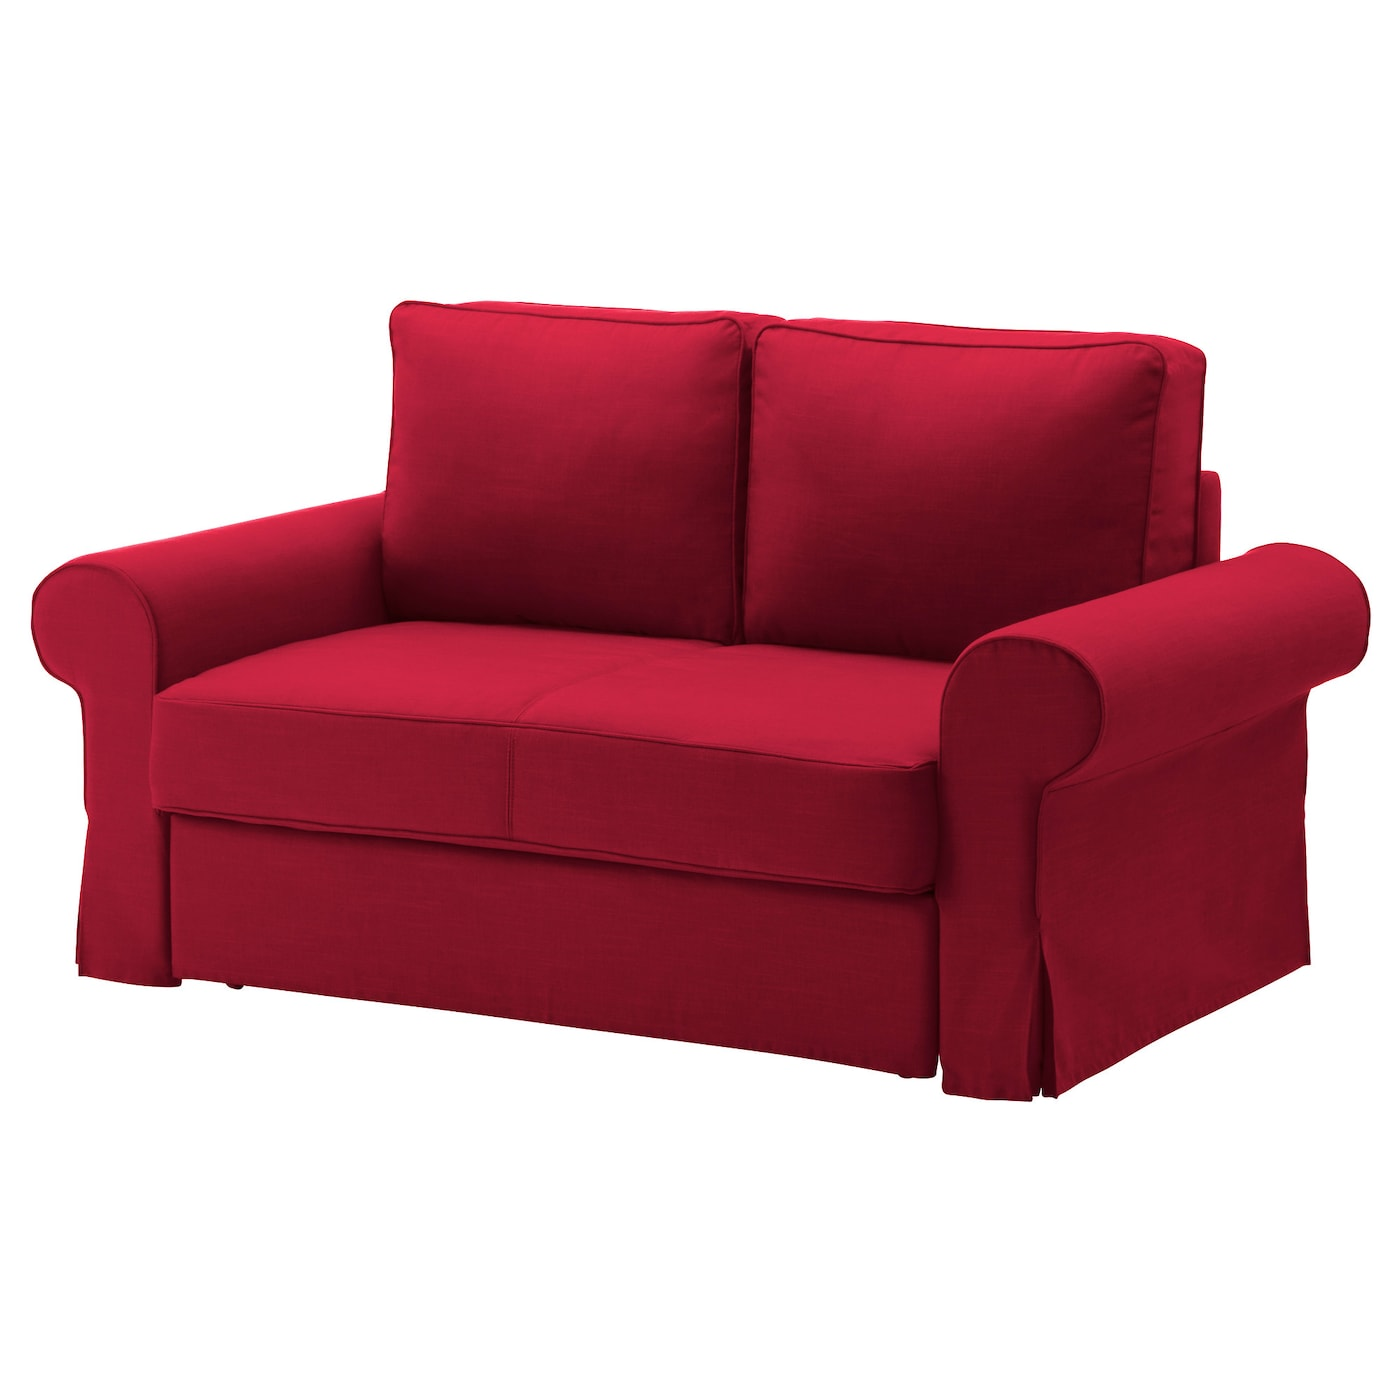 Backabro two seat sofa bed nordvalla red ikea for Sofa 1 80 breit